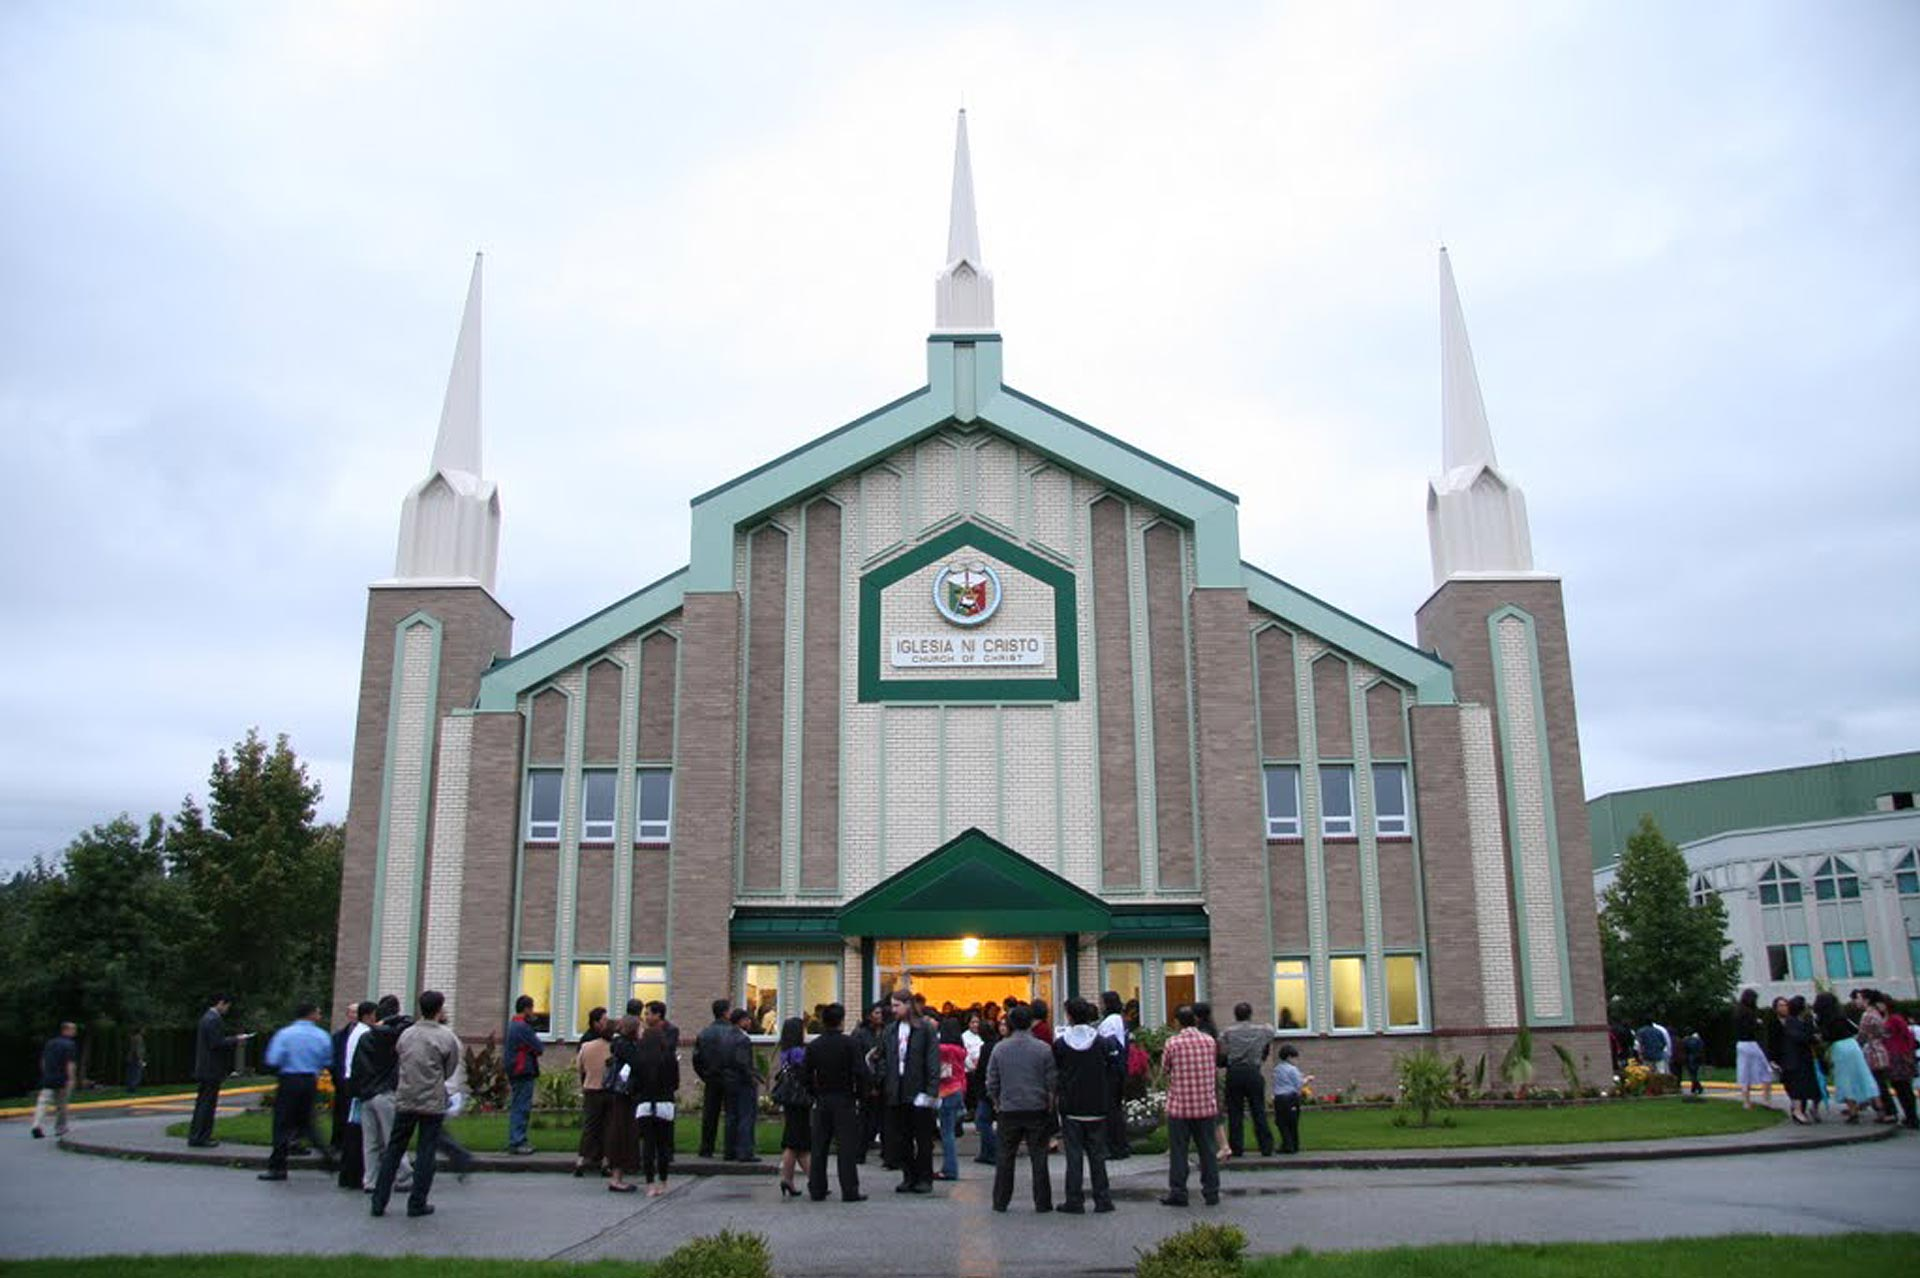 iglesia ni cristo The iglesia ni cristo (church of christ) is a true christian religion that adheres to the unadulterated teachings of the lord jesus christ written in the bible we believe in the lord jesus christ, acknowledging him as lord and savior.